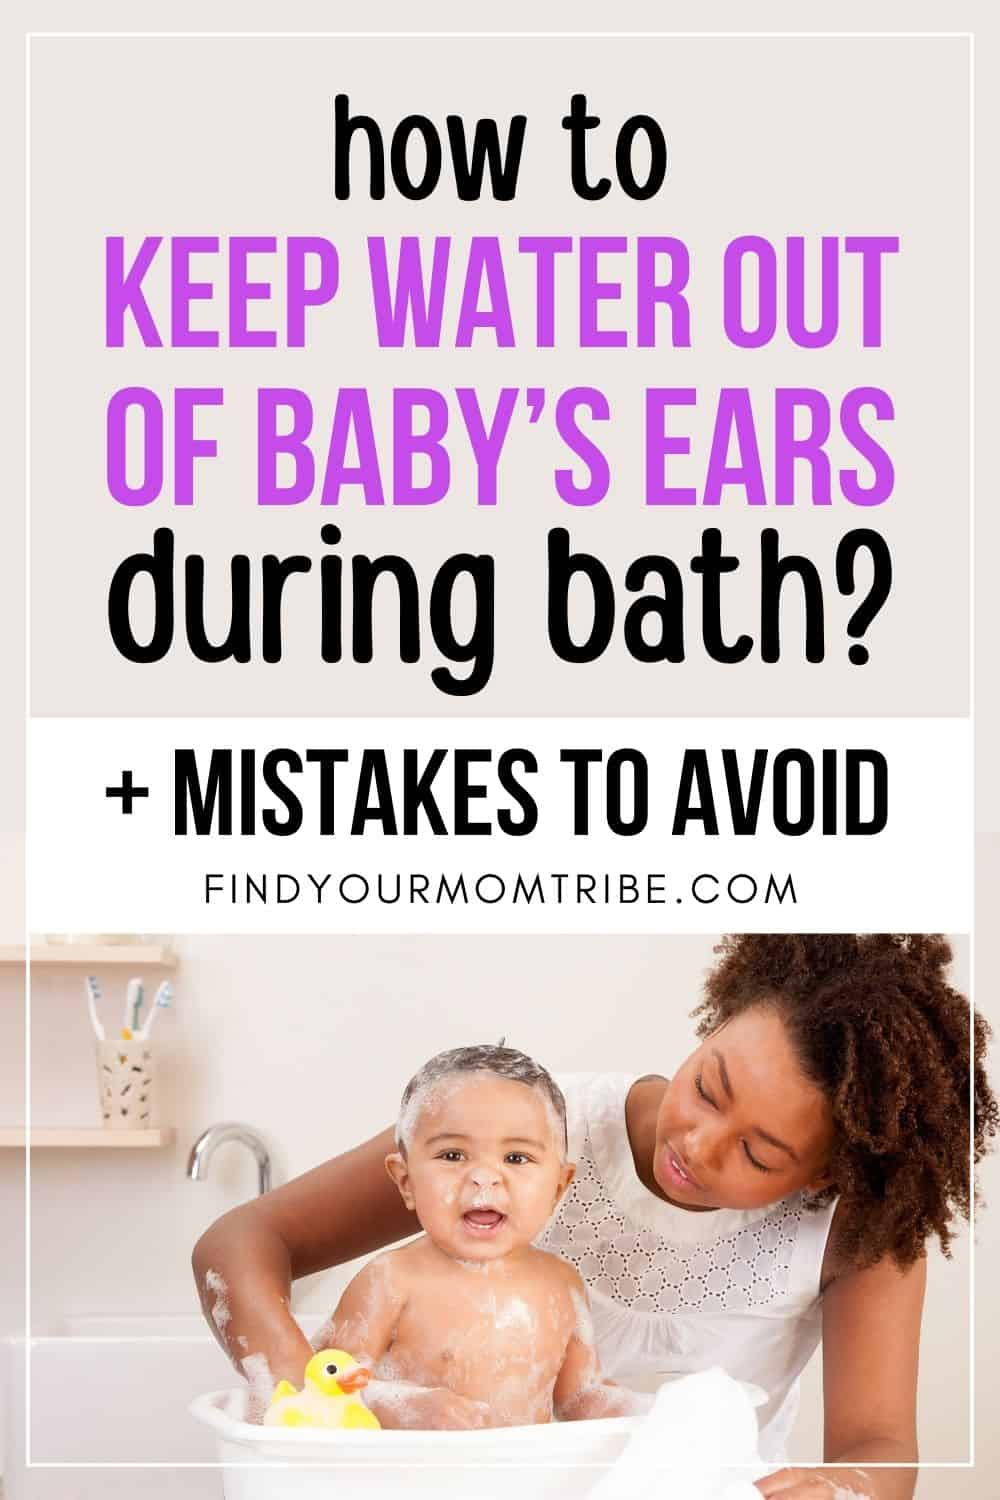 How To Keep Water Out Of Baby's Ears During Bath Pinterest